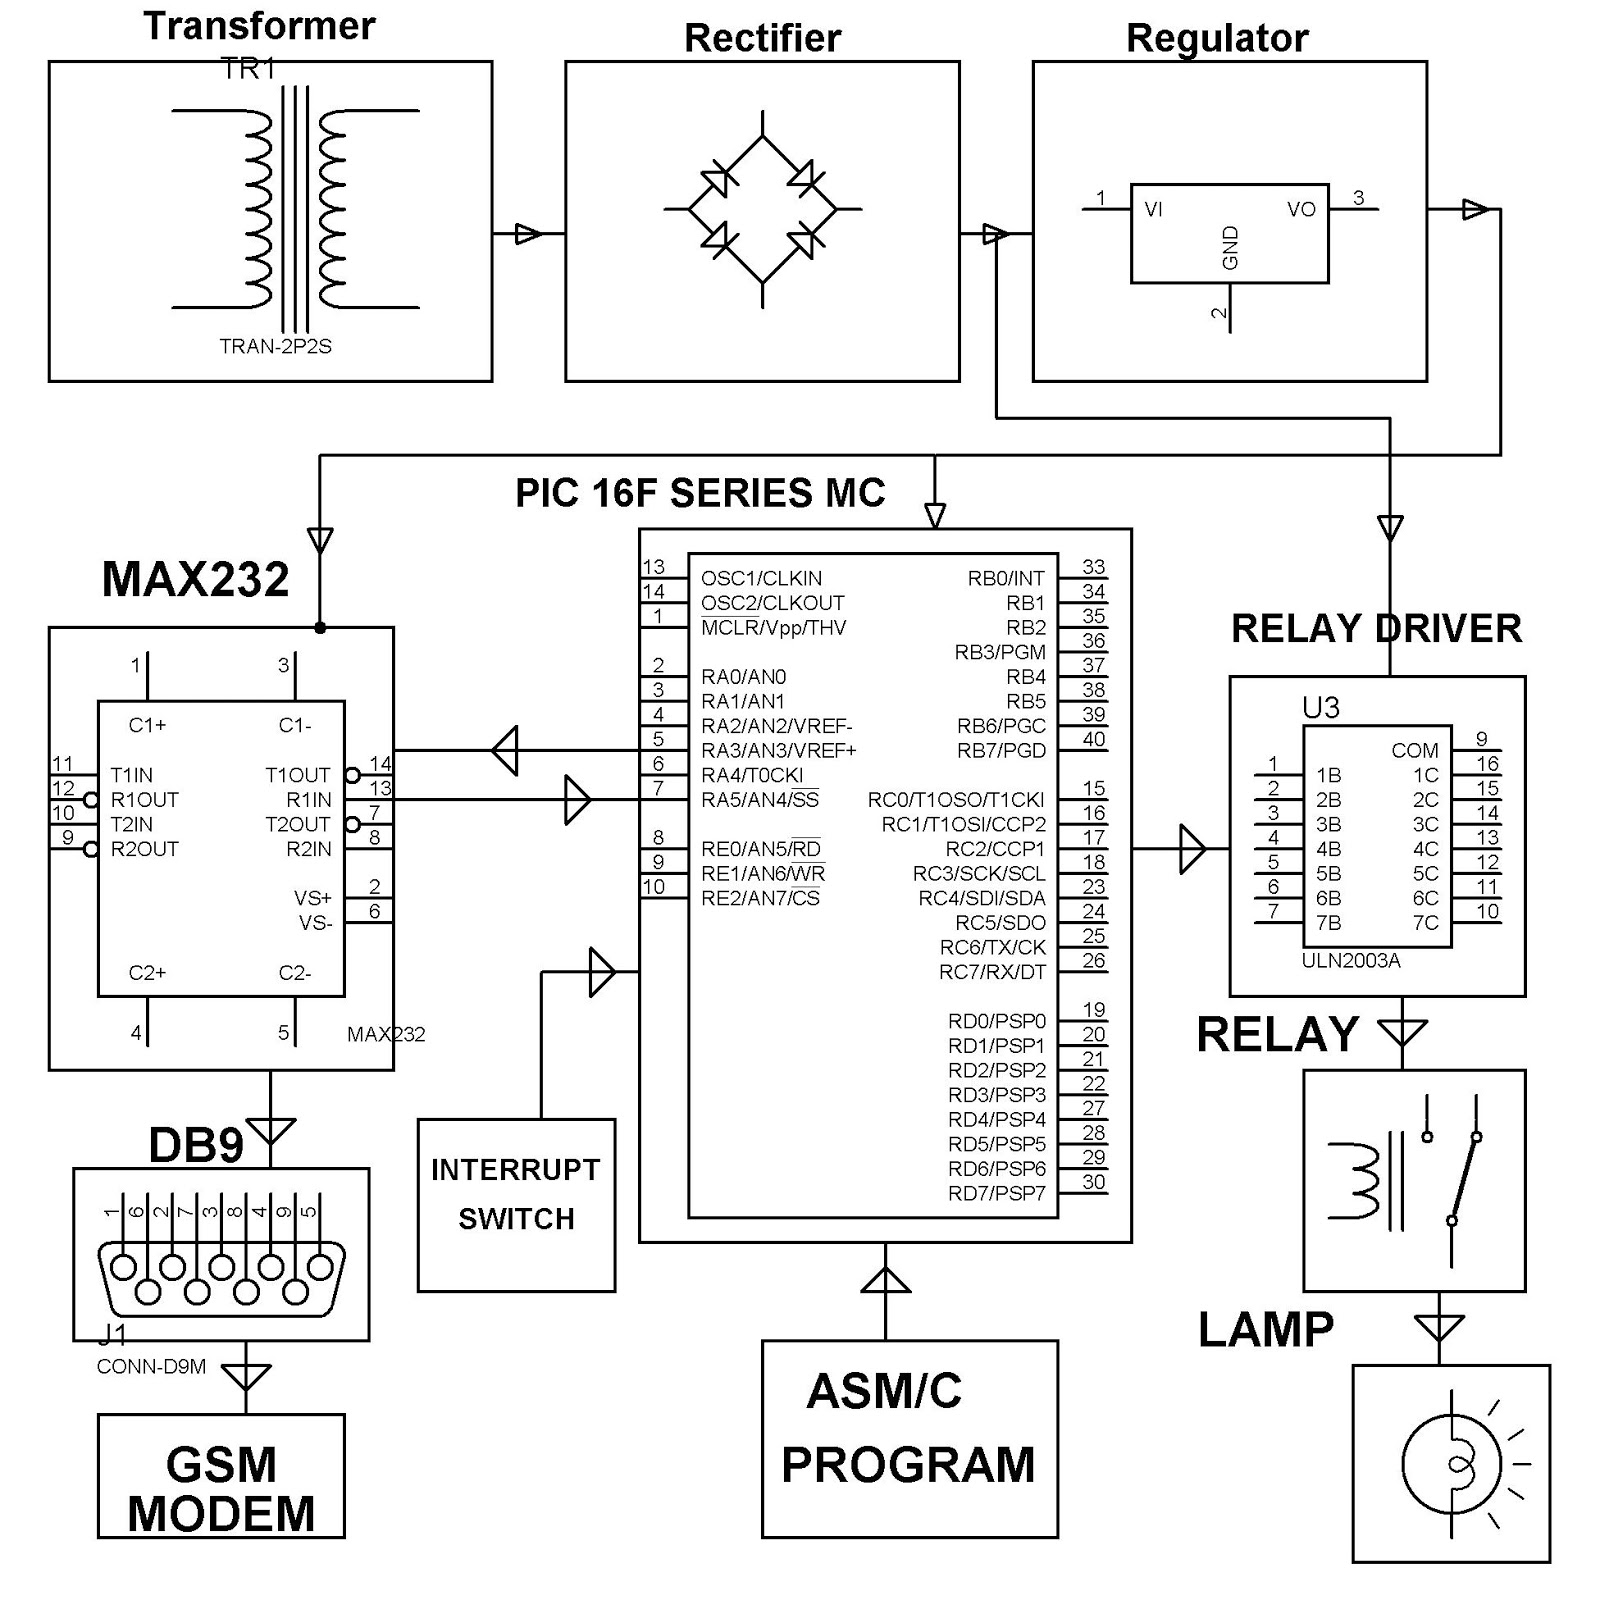 ELECTRONICS PROJECT (MALAYSIA): THEFT INTIMATION OF